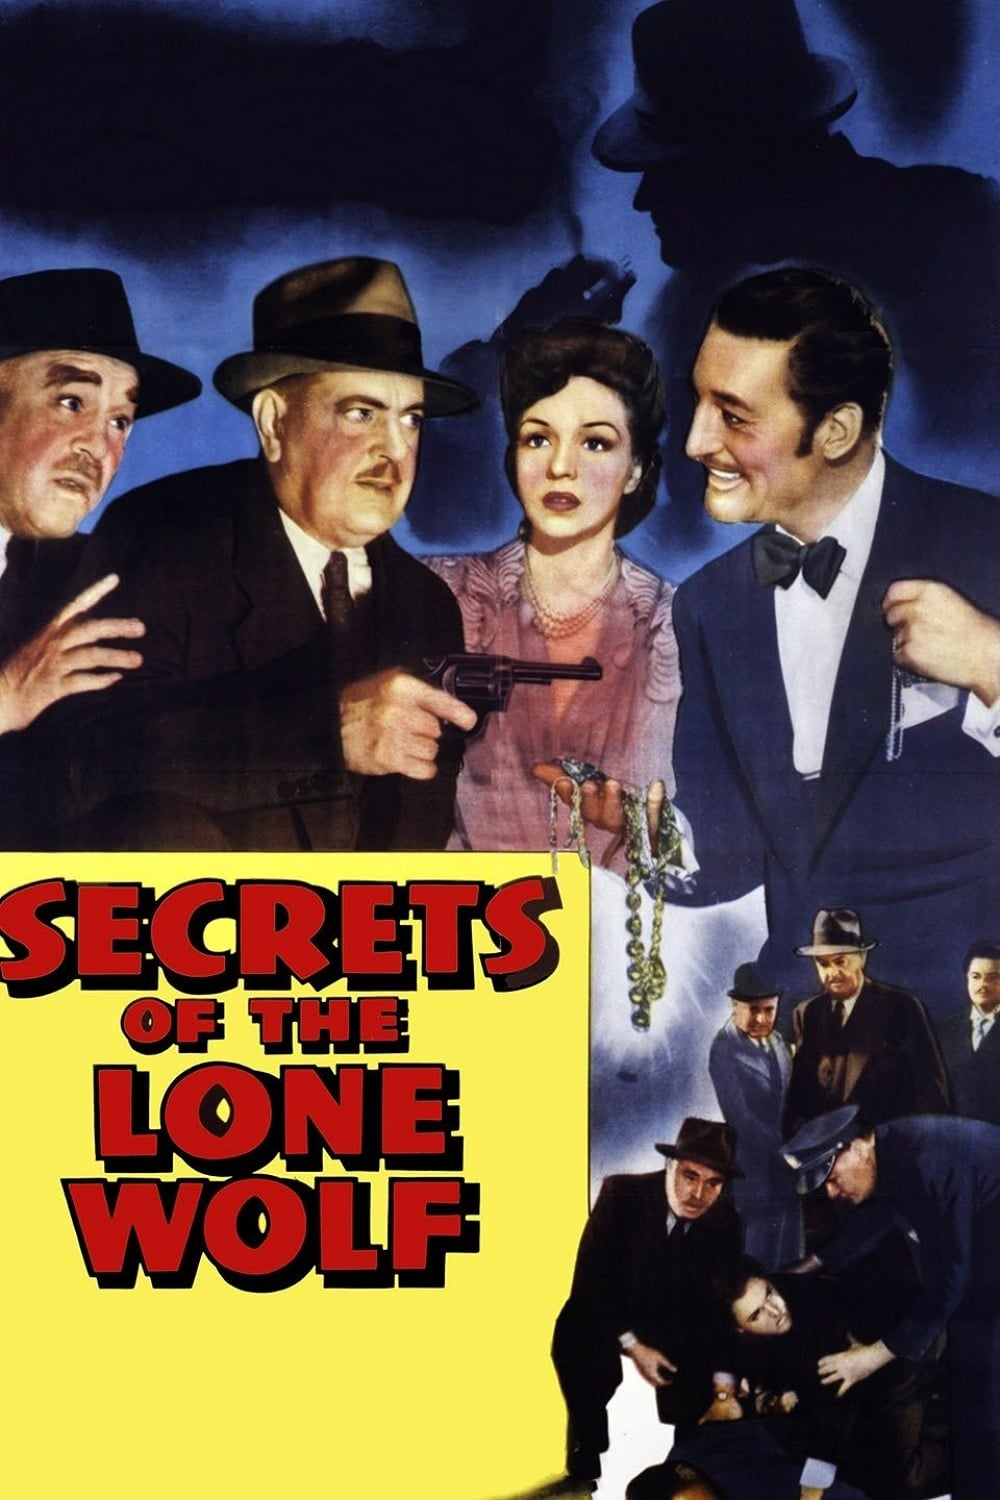 Secrets of the Lone Wolf (1941)